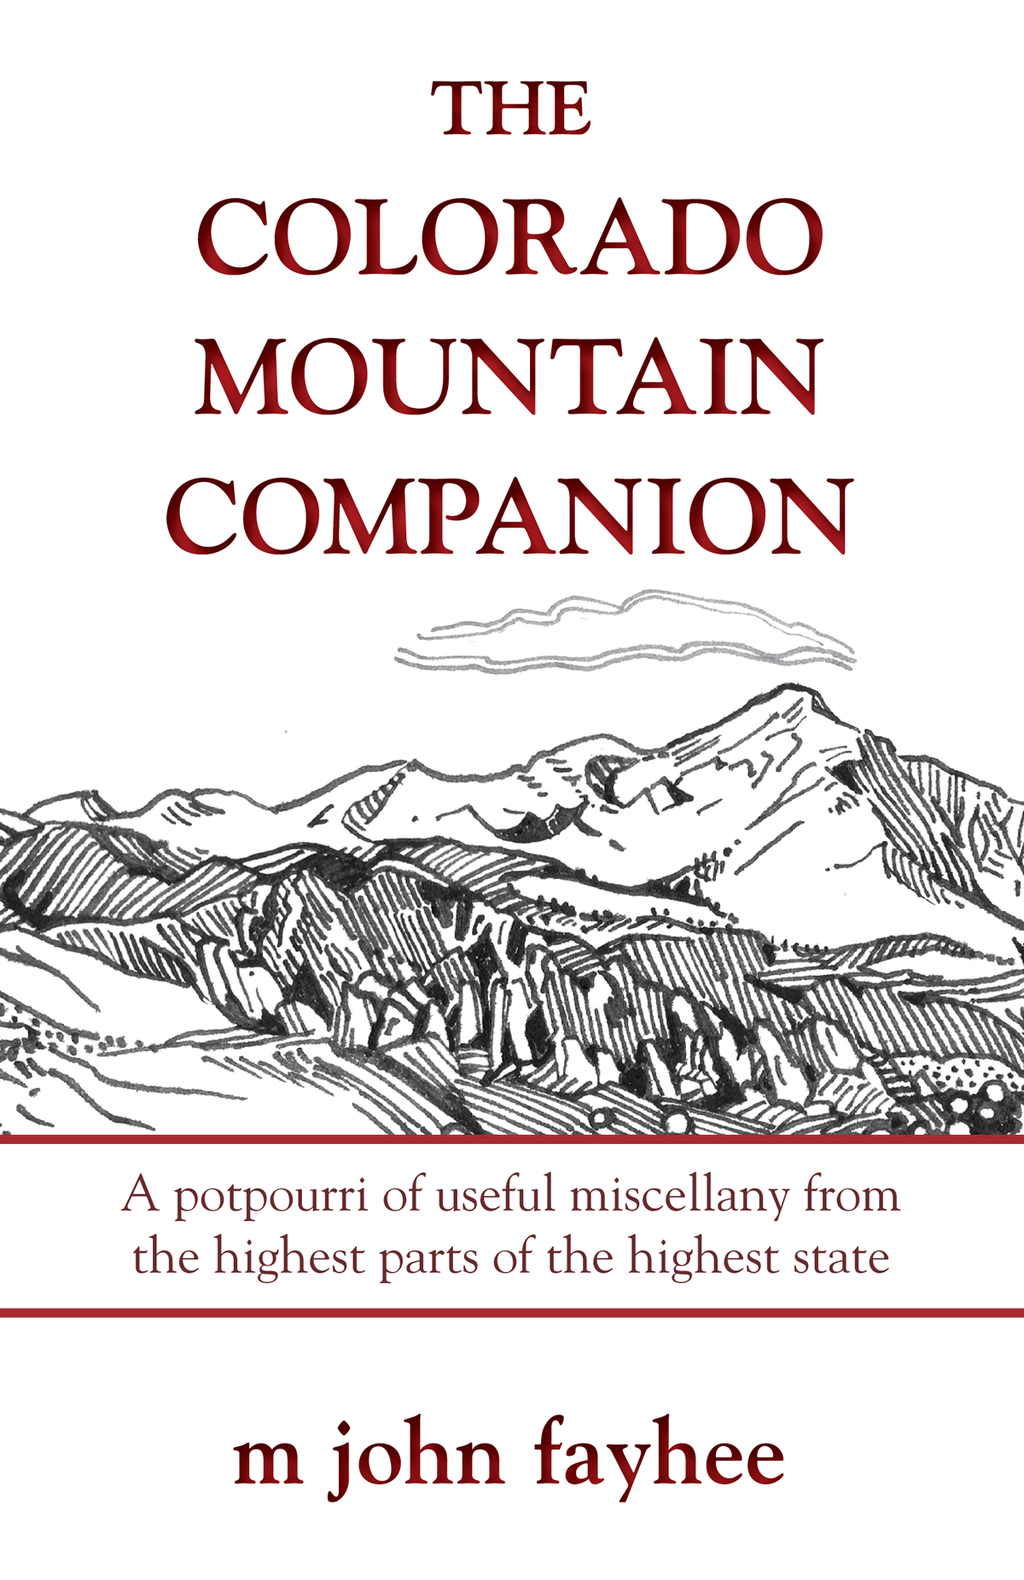 The Colorado Mountain Companion